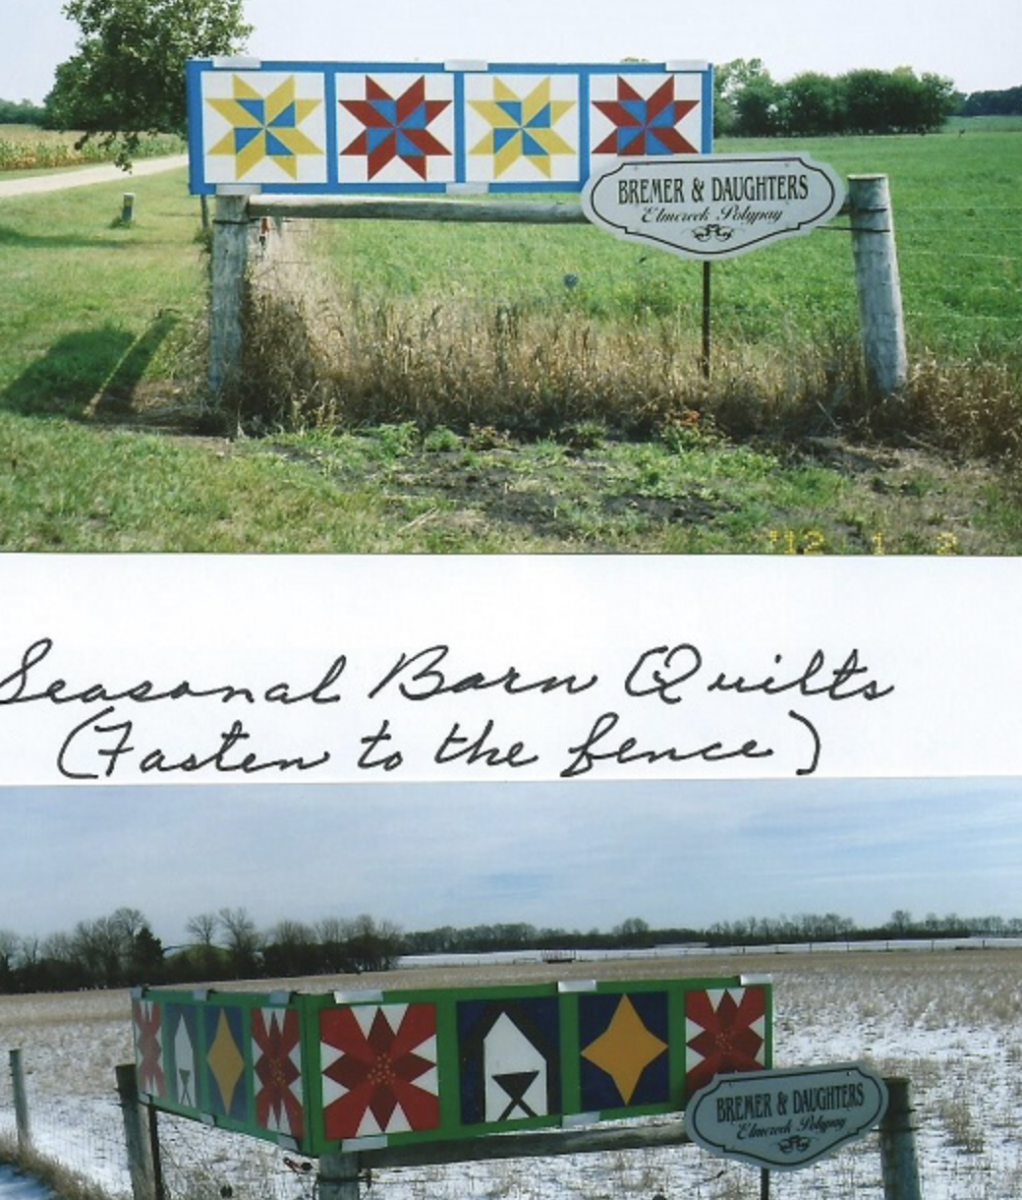 30. Larry and Annette Bremer-Fence Corner Barn quilt-change w/seasons - 1948 Hwy 15 Truman MN 56088